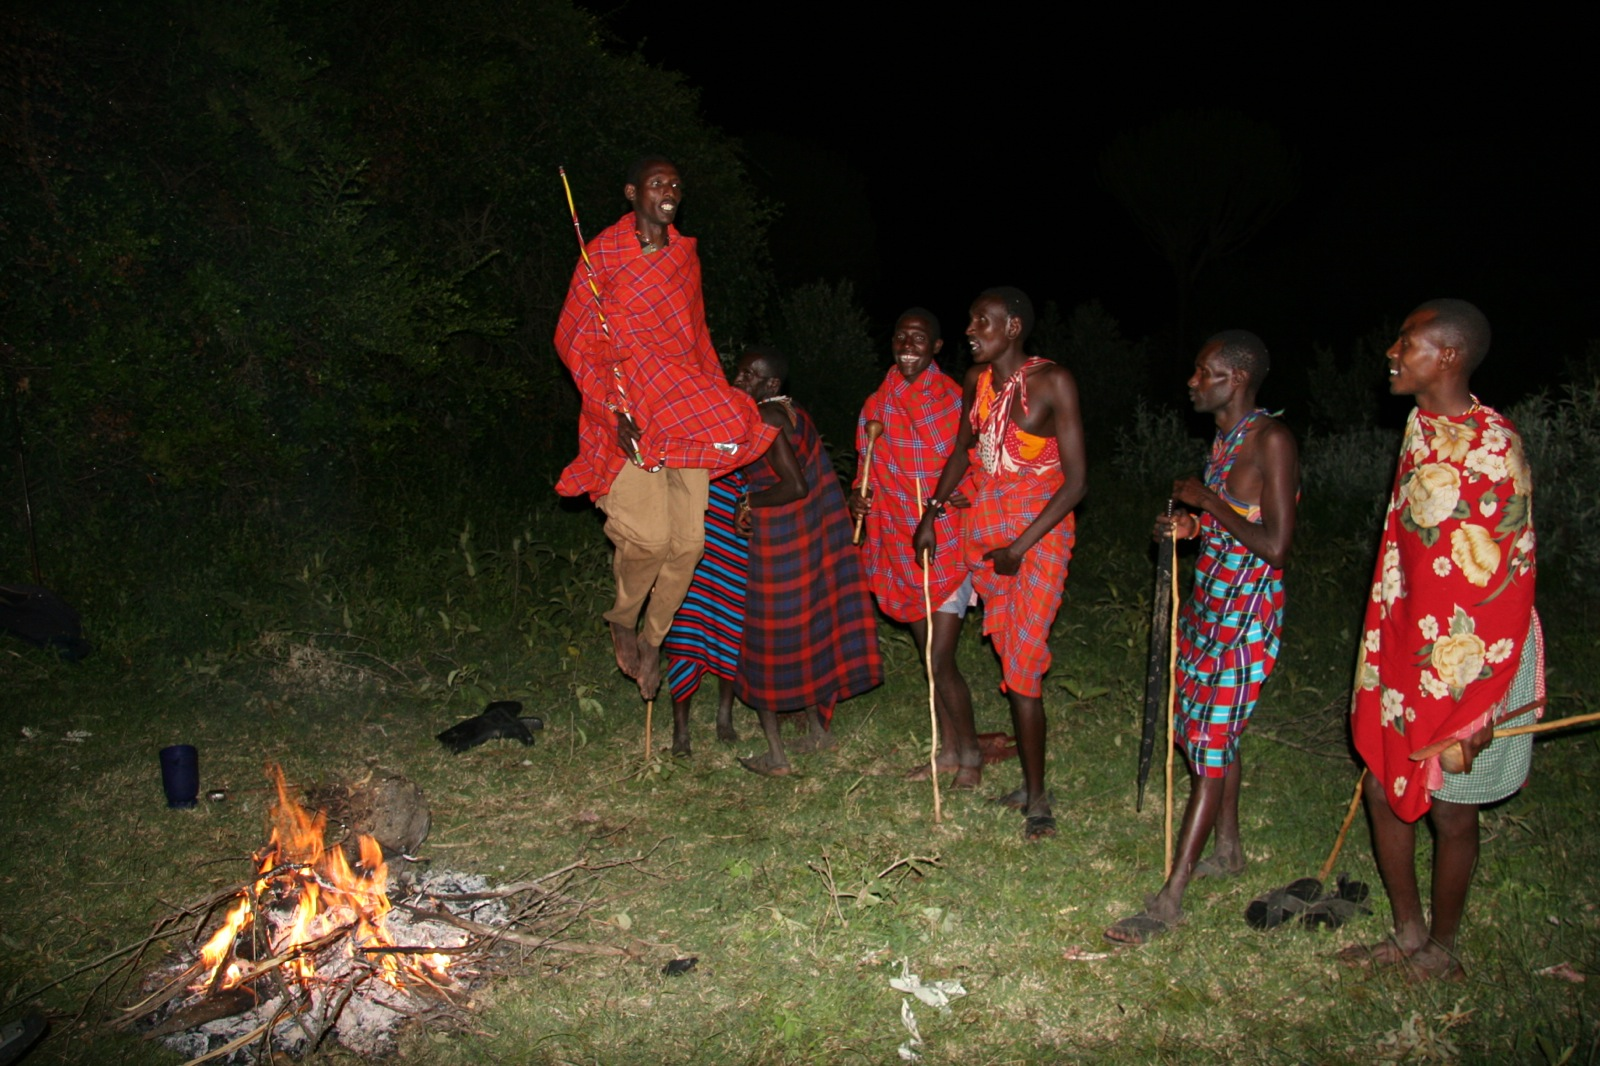 Maasai men in traditional dress showing their jumping skills by a campfire in the Kenya wilderness.